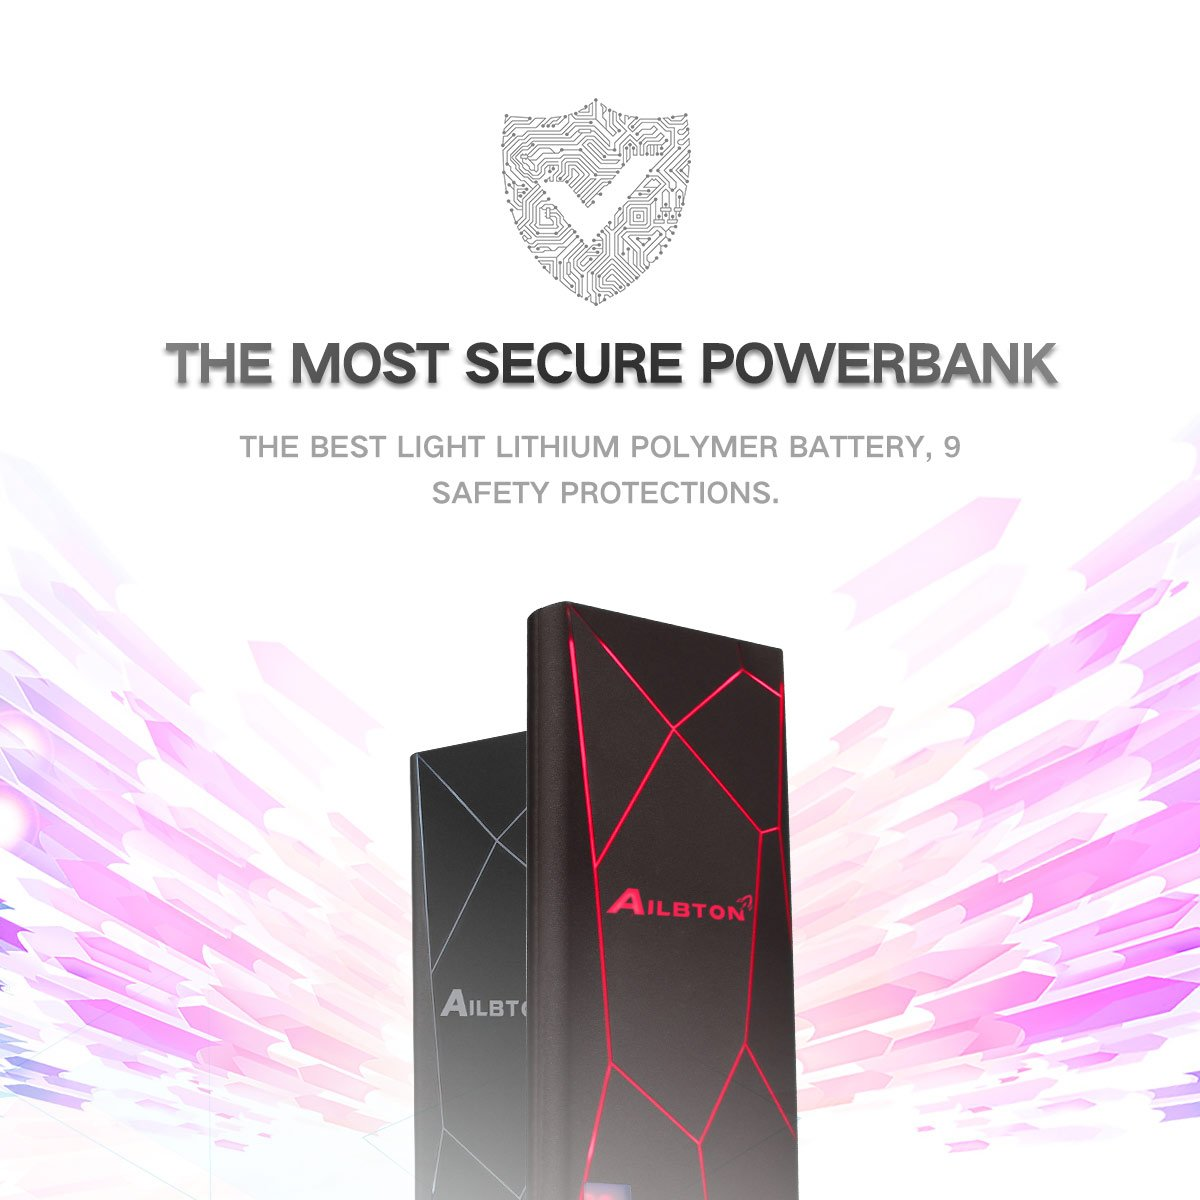 Portable Charger Ailbton Power Bank 8000mAh Capacity with Smart Digital Display Unique External Battery Pack with Cool Decor LED Color Light Fast Charging for iPhone Samsung Galaxy,Pads and More, Red